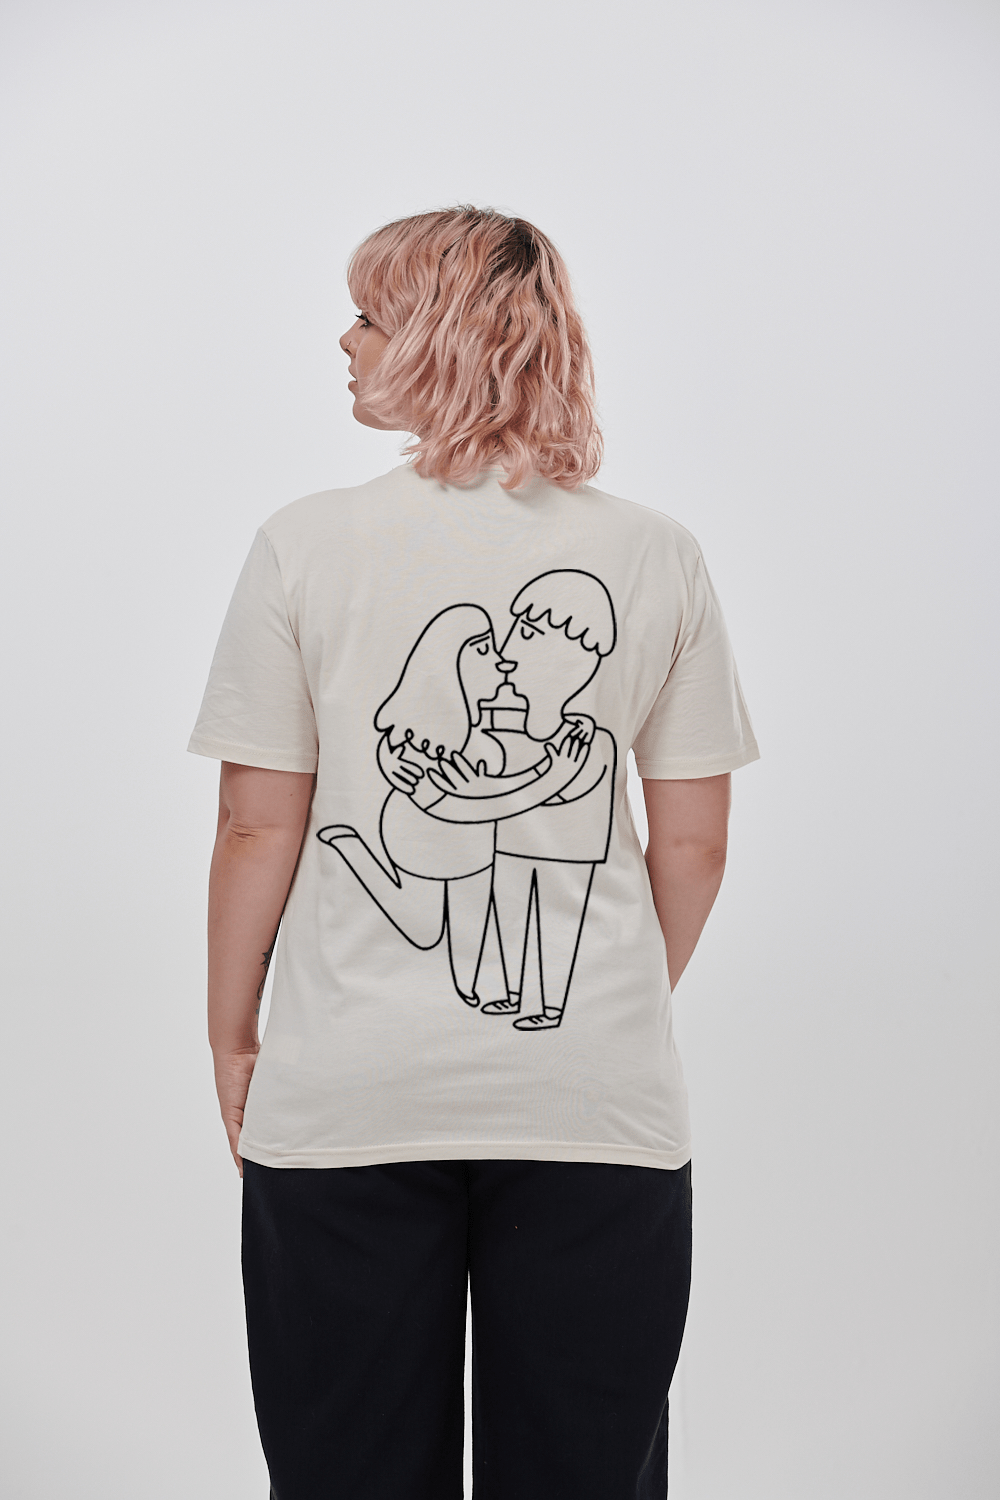 Lucy & Yak TOP 'Ava' Limited Edition Teeshirt By Nat